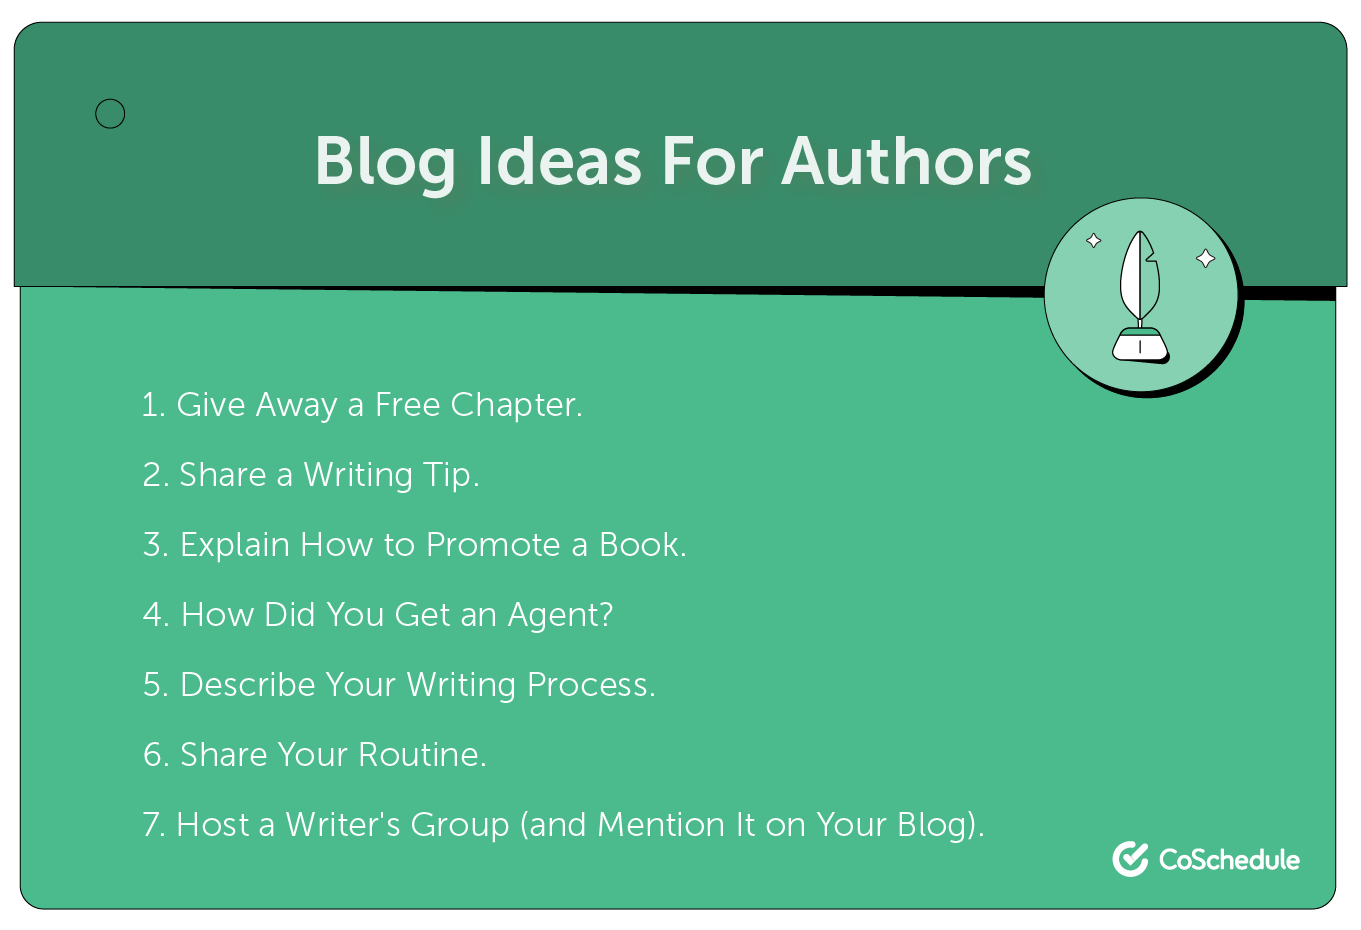 Blog ideas for authors.